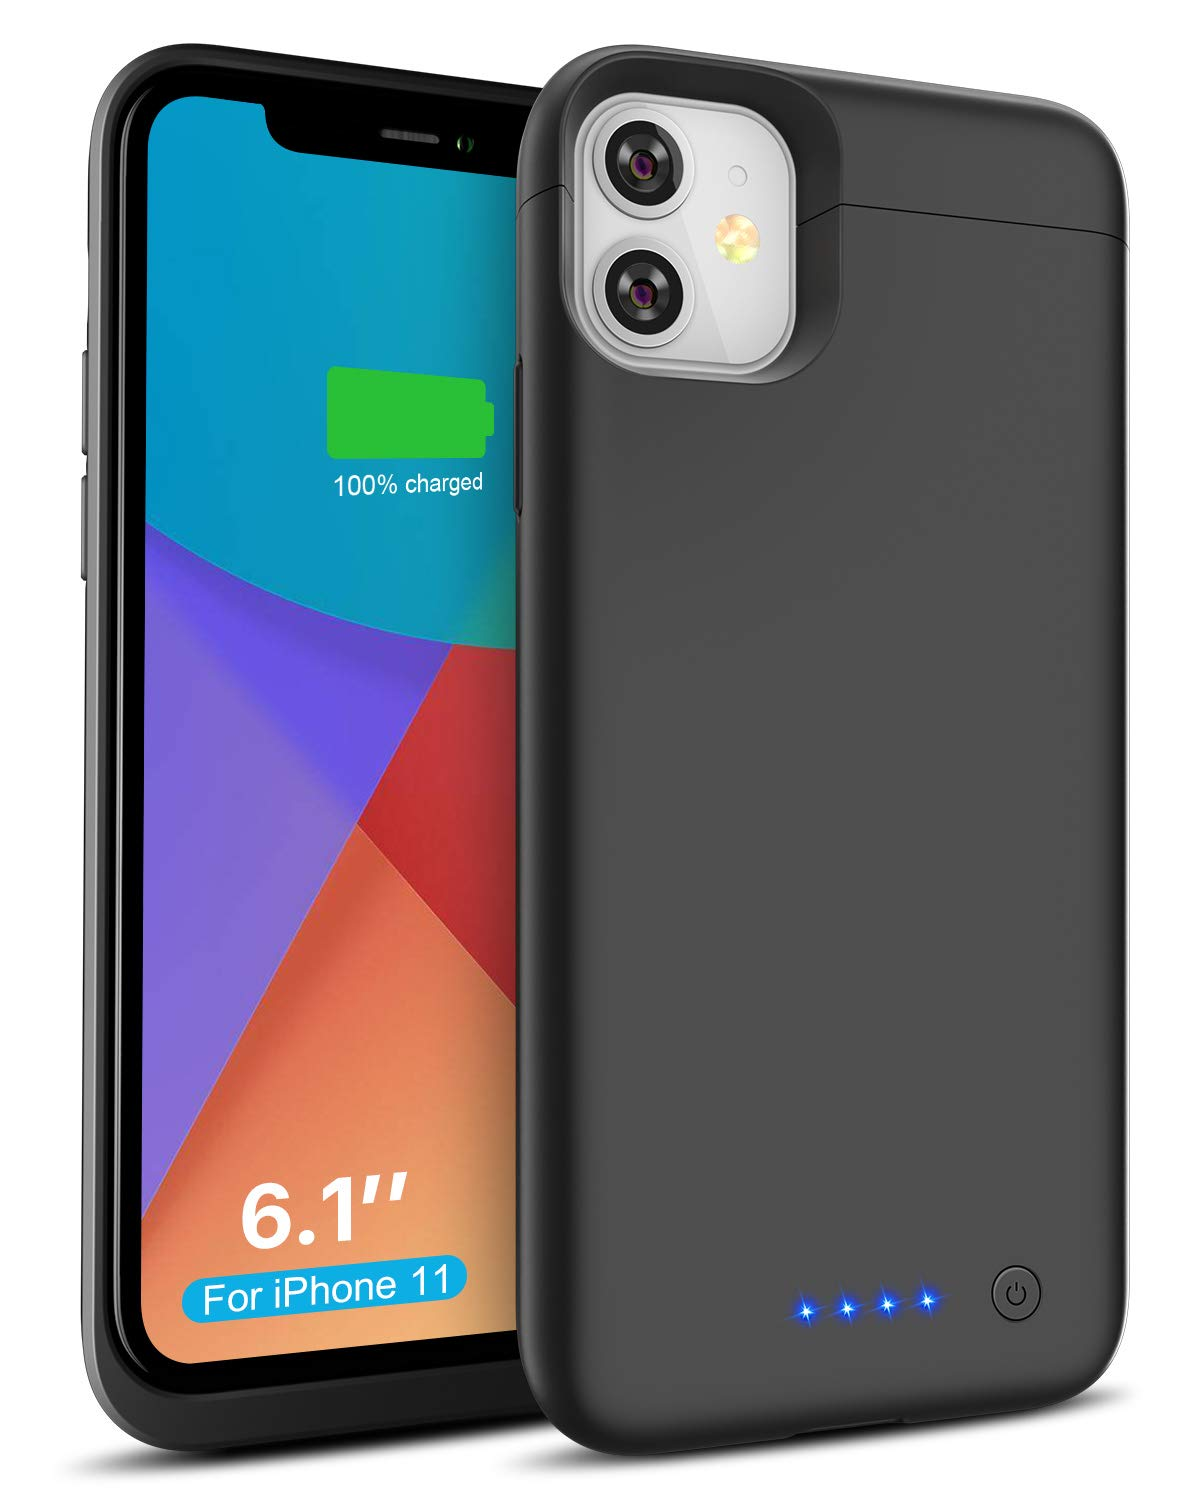 Battery Case for iPhone 11, 6200mAh Rechargeable Charging Case for iPhone 11, Portable Backup Power Bank Extended Battery Charger Case- Black (6.1 inch)